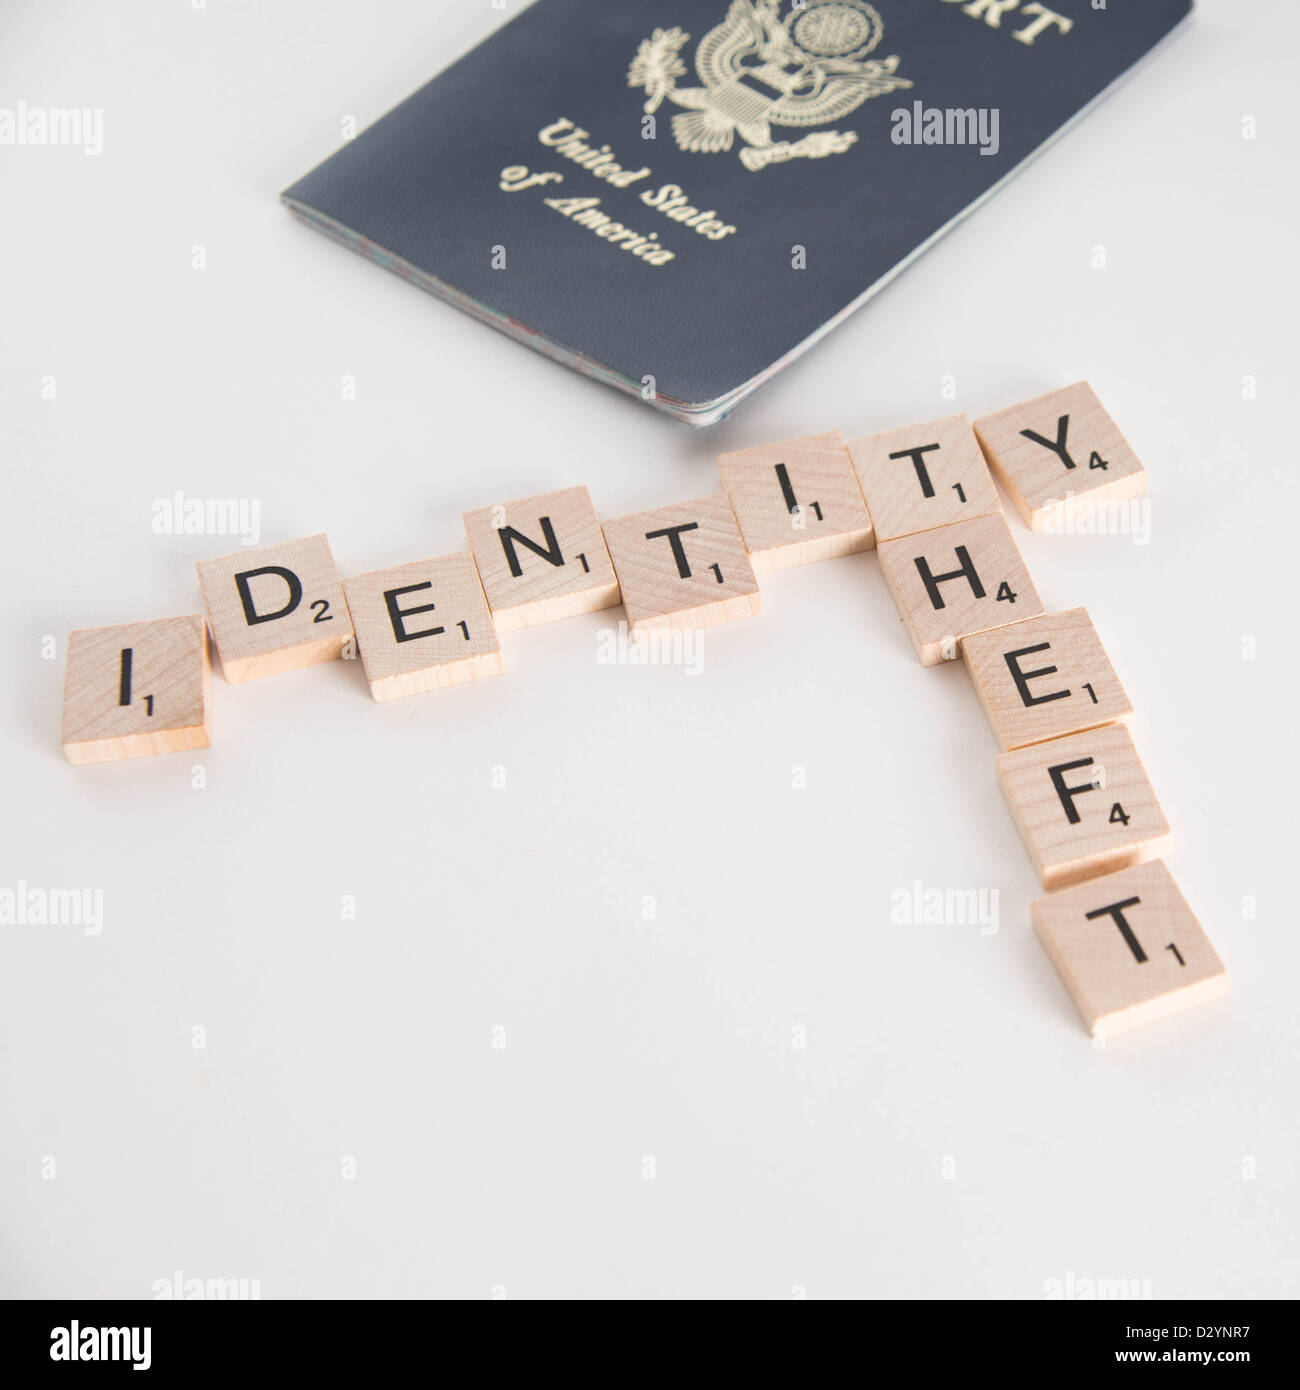 Identity theft spelled in Scrabble letters with US passport out of focus in the background. Isolated on white background. - Stock Image